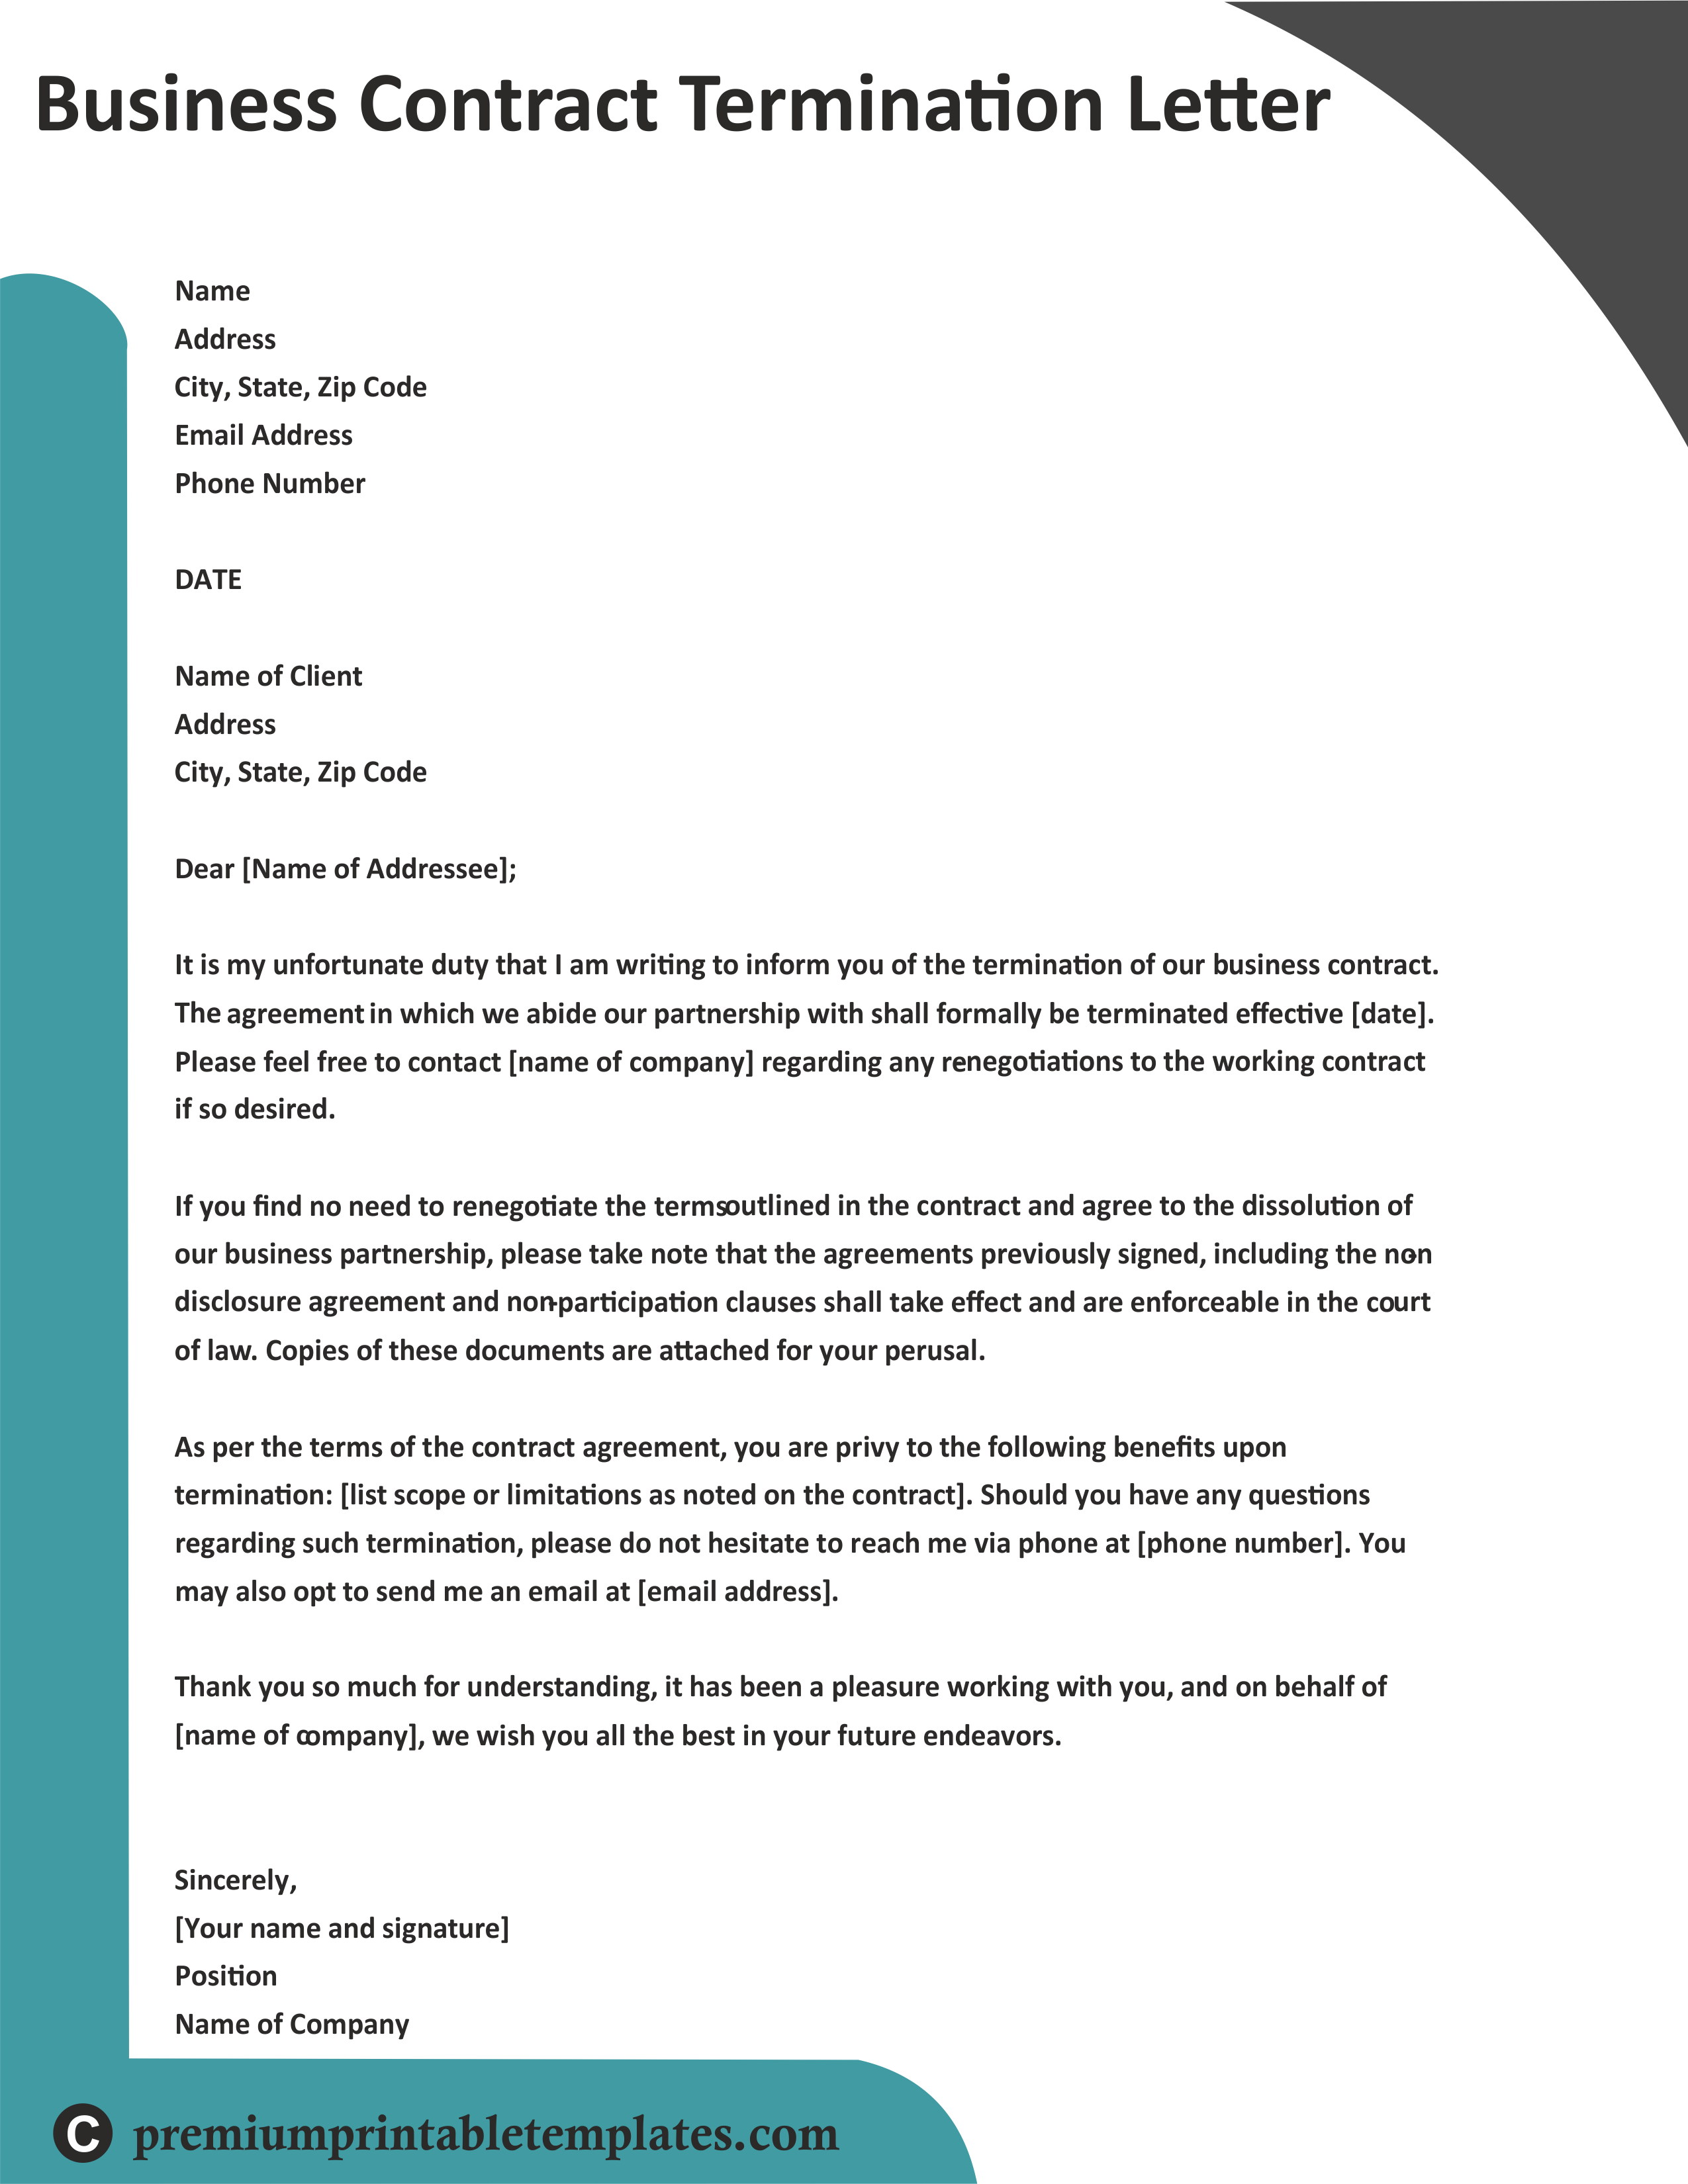 Business Contract Termination Letter Business letter